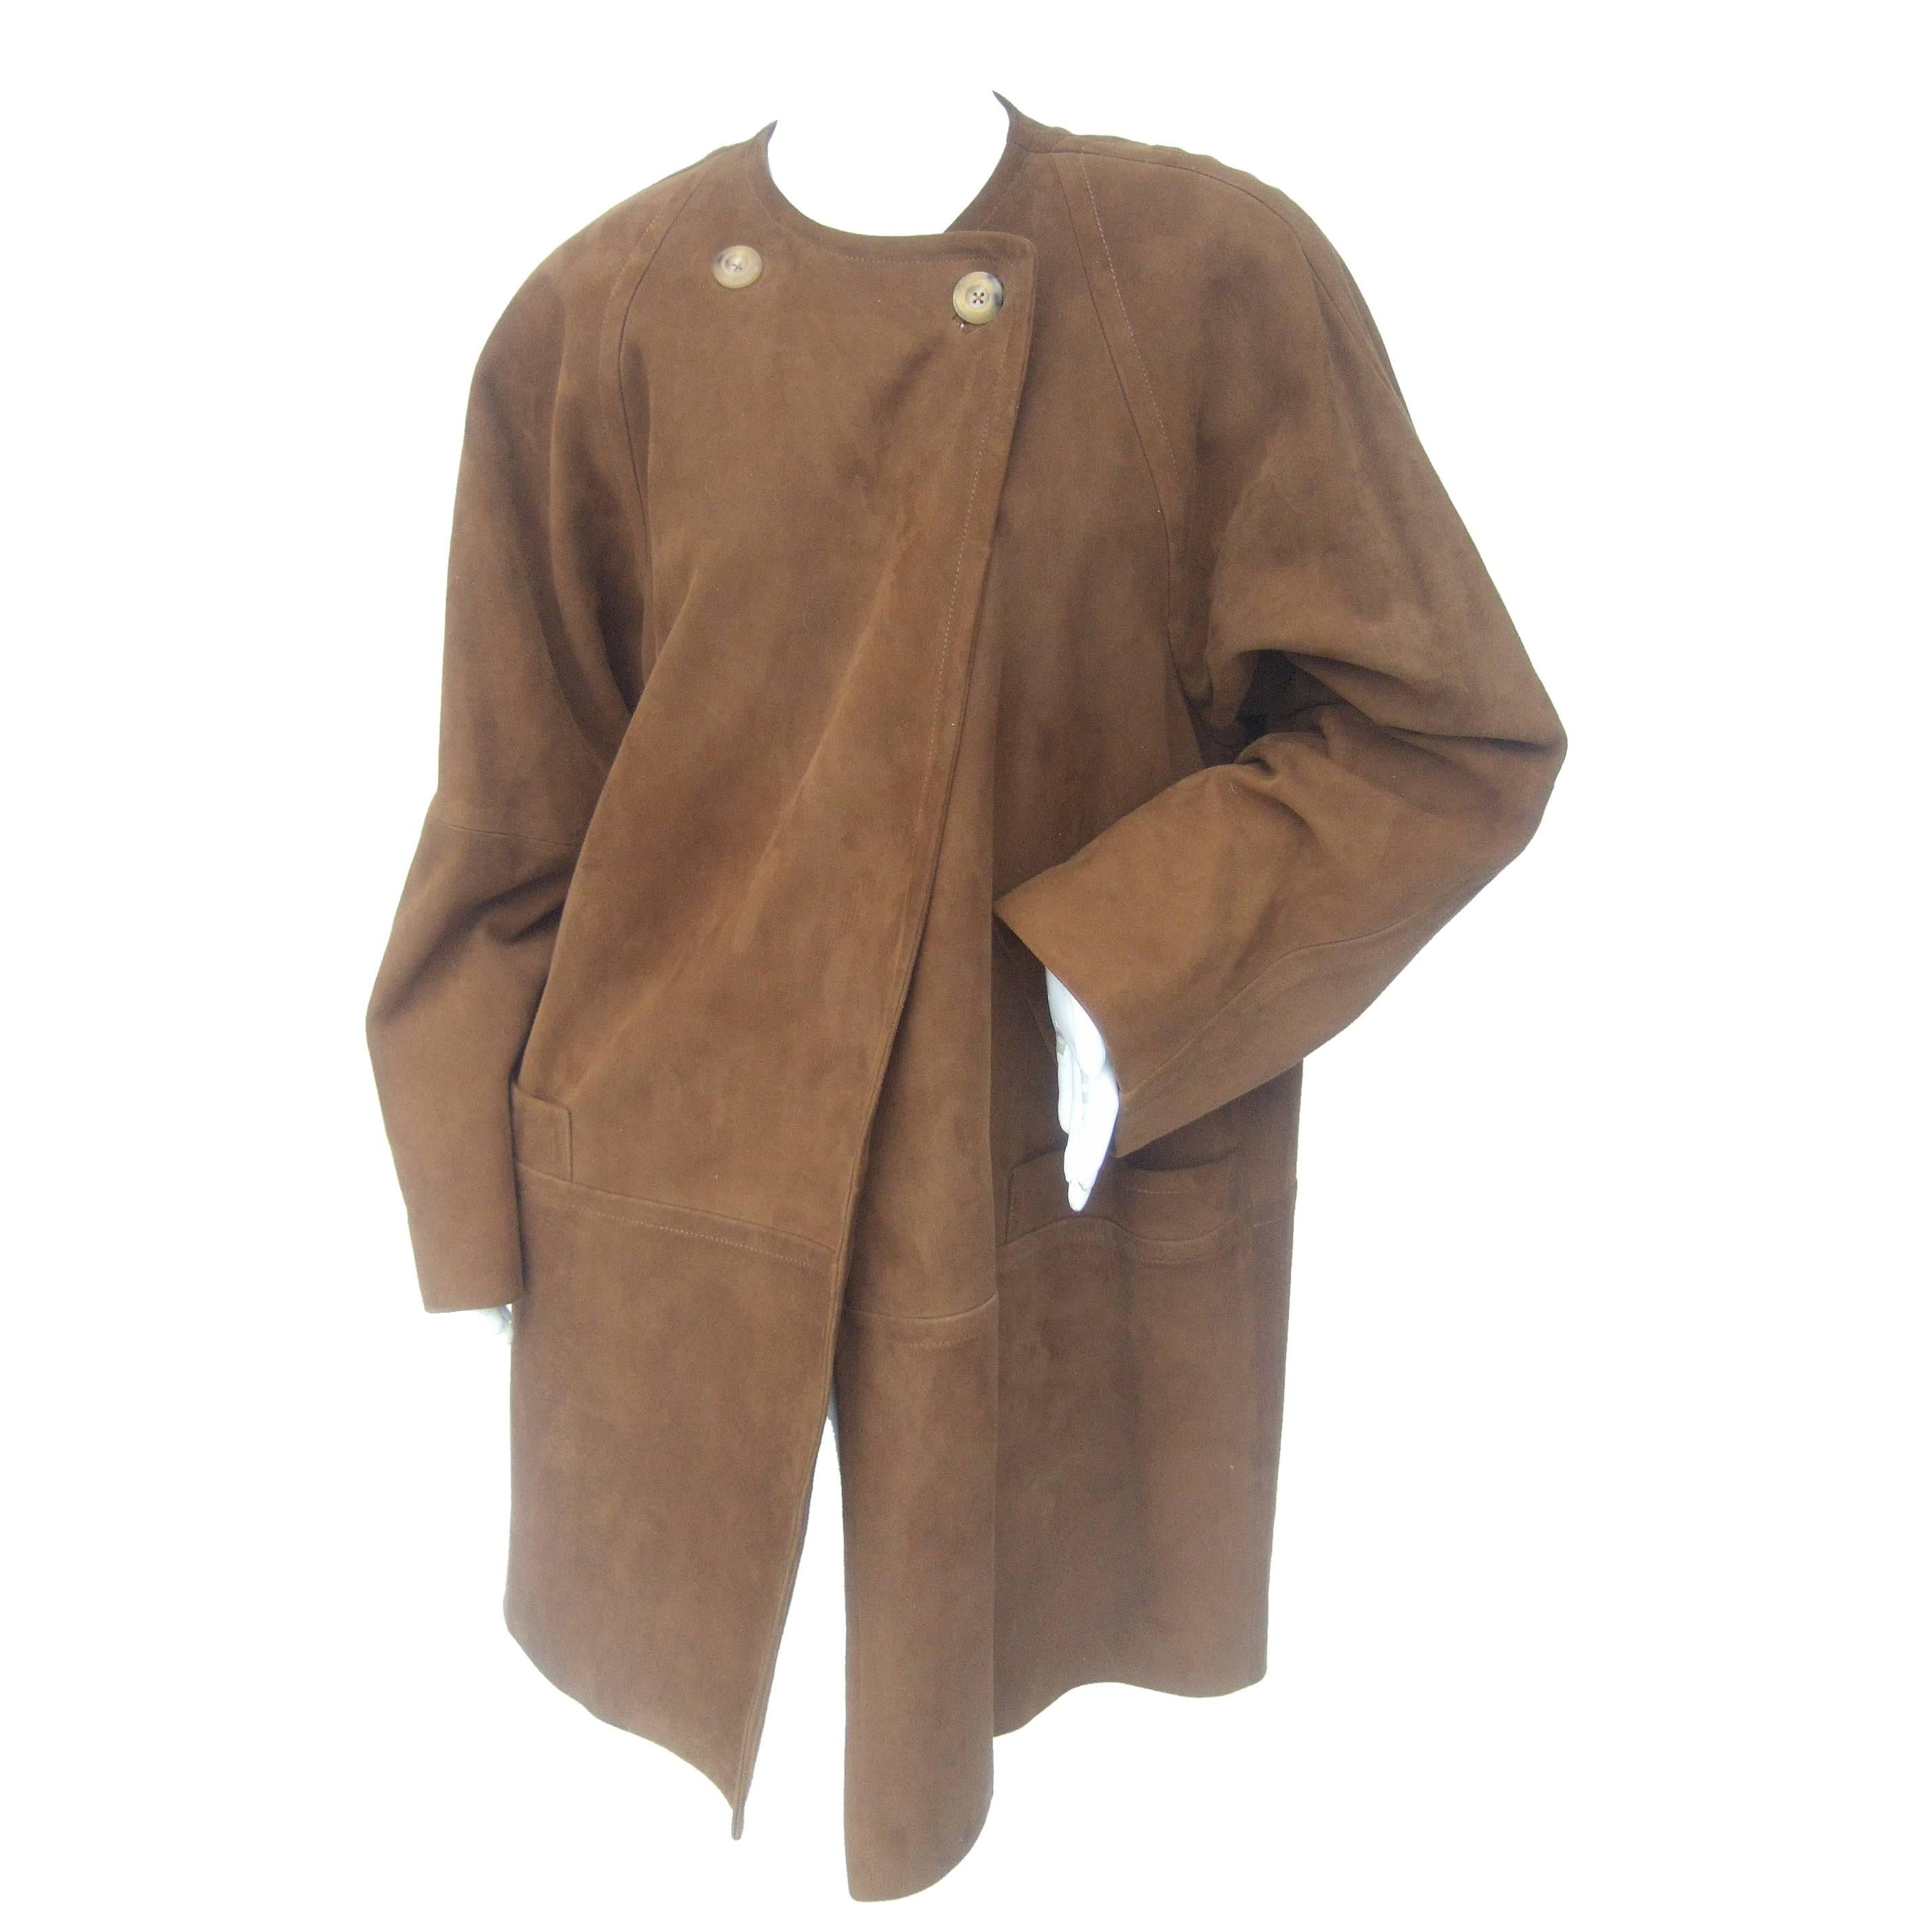 Jaeger Stylish Brown Doeskin Suede Duster Coat ca 1990s